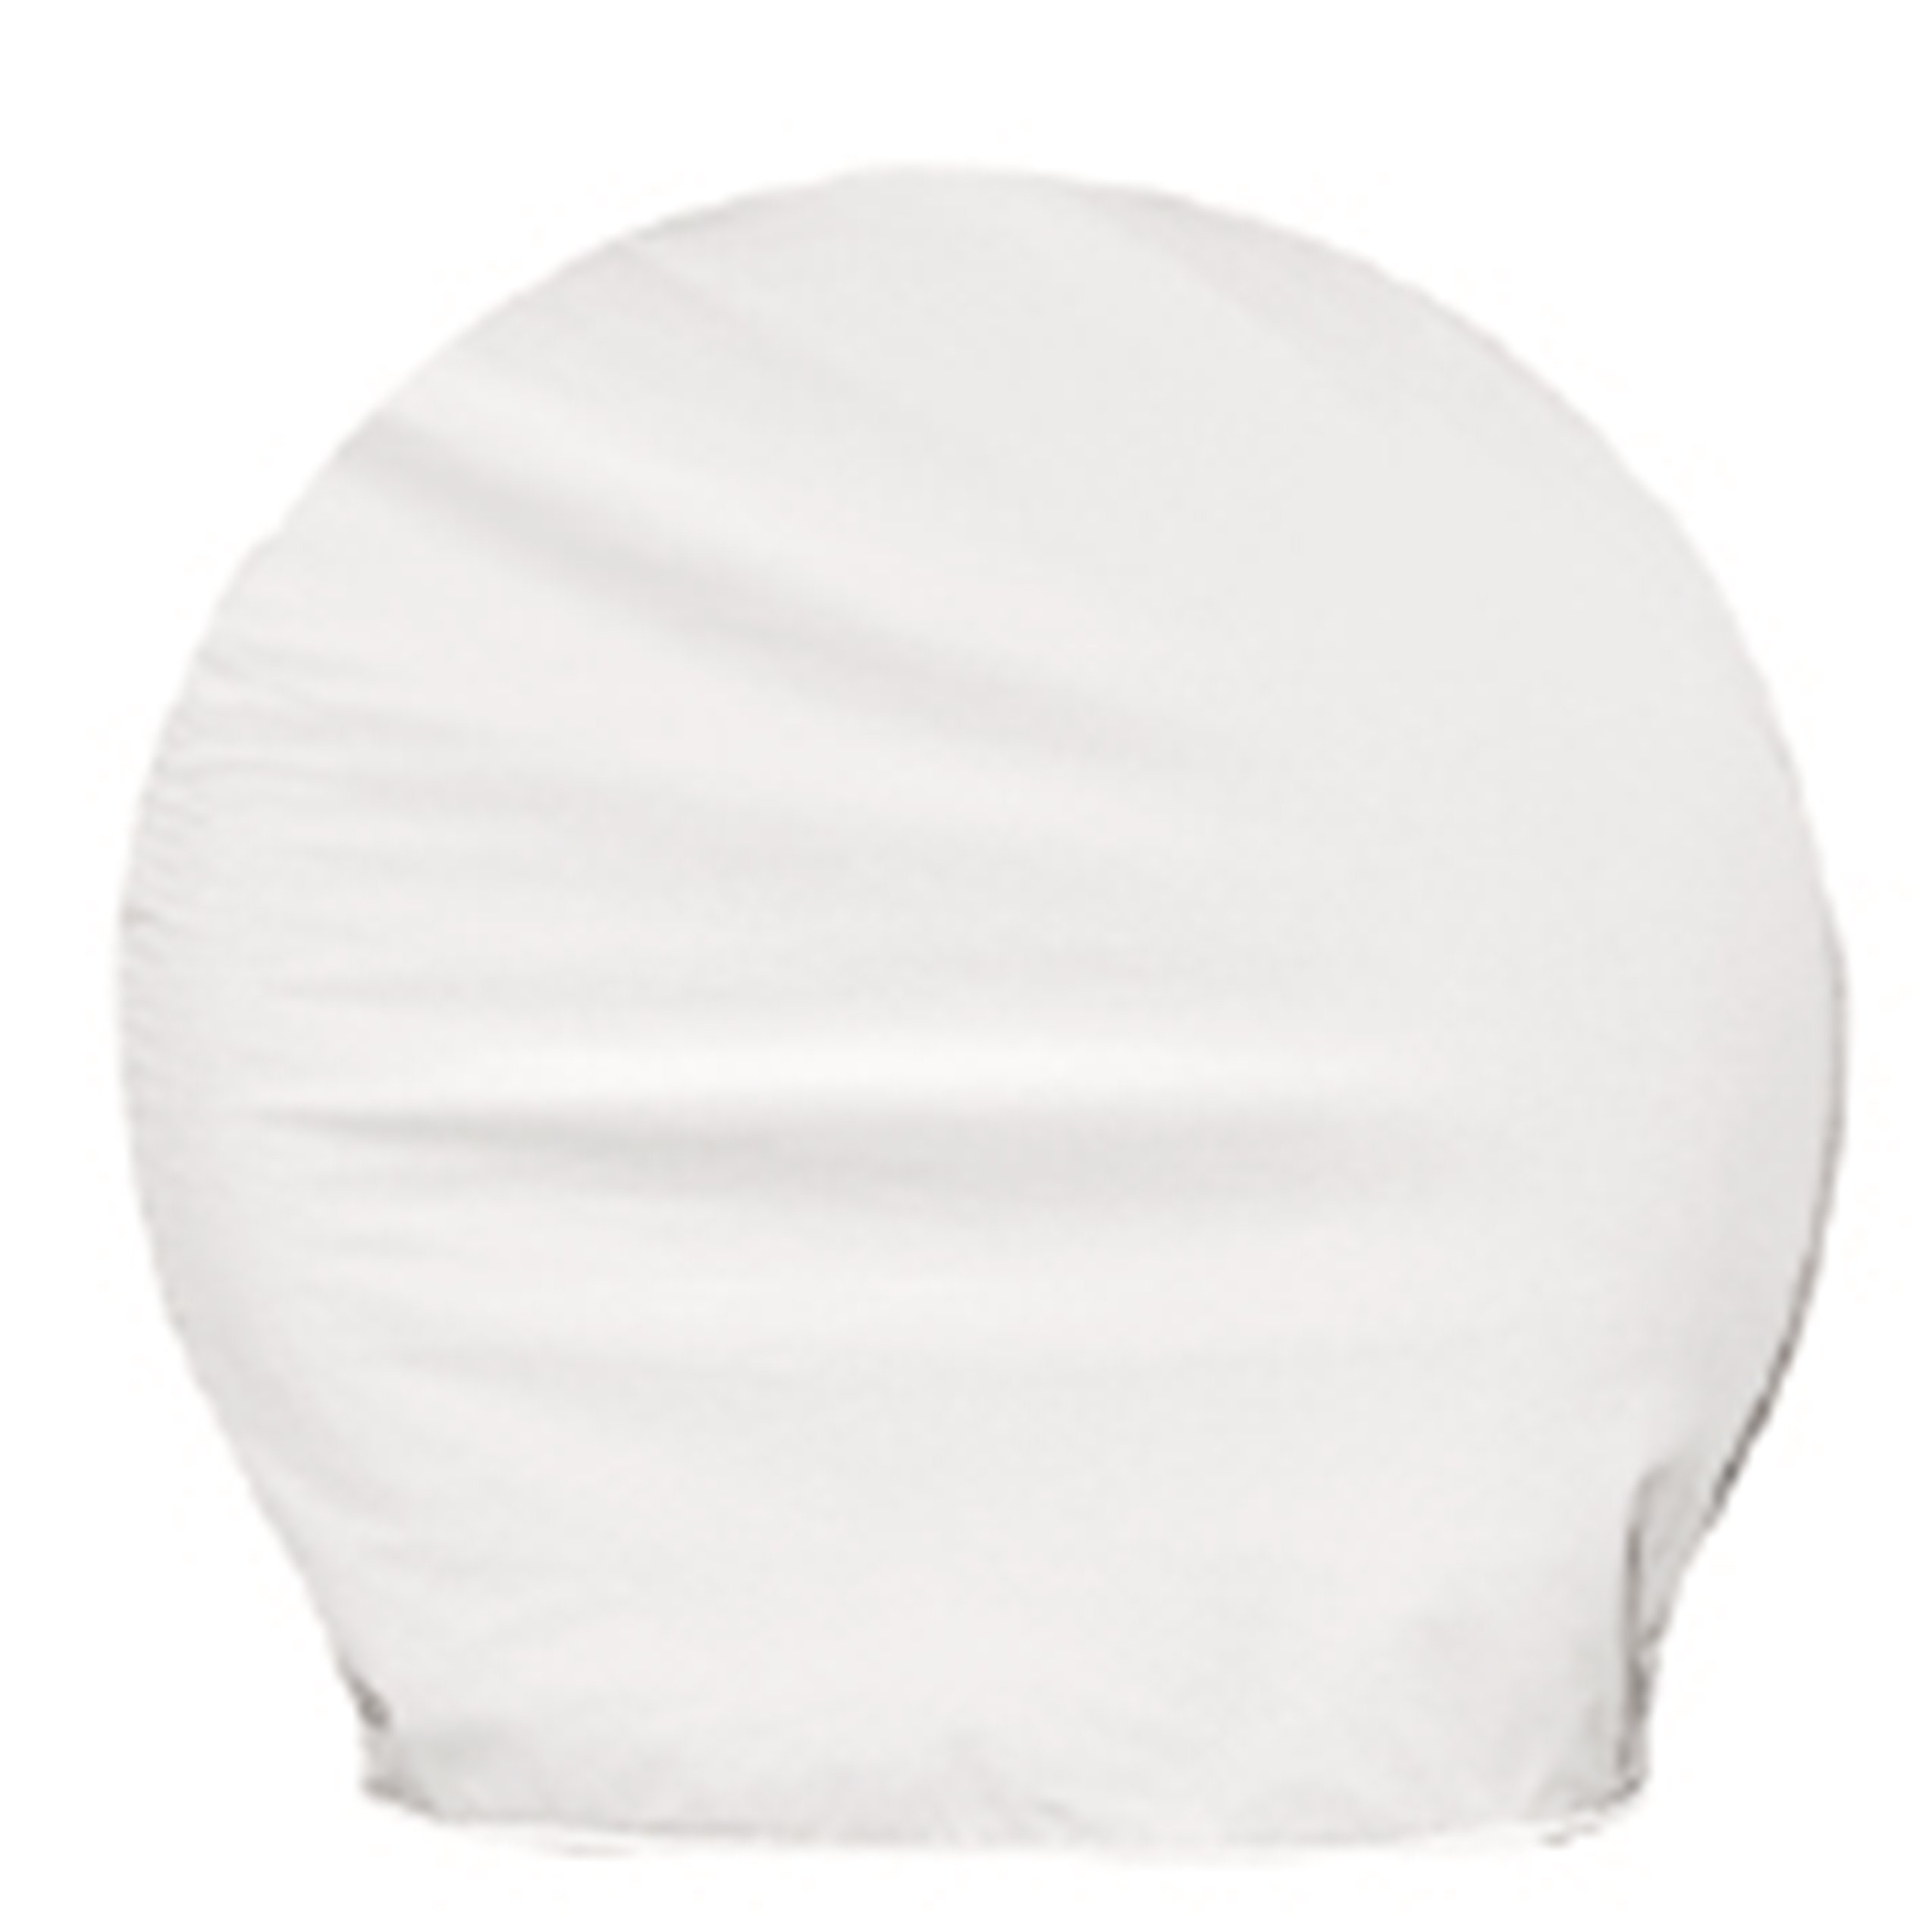 ADCO 3955 White Ultra Tyre Gard Wheel Cover by ADCO